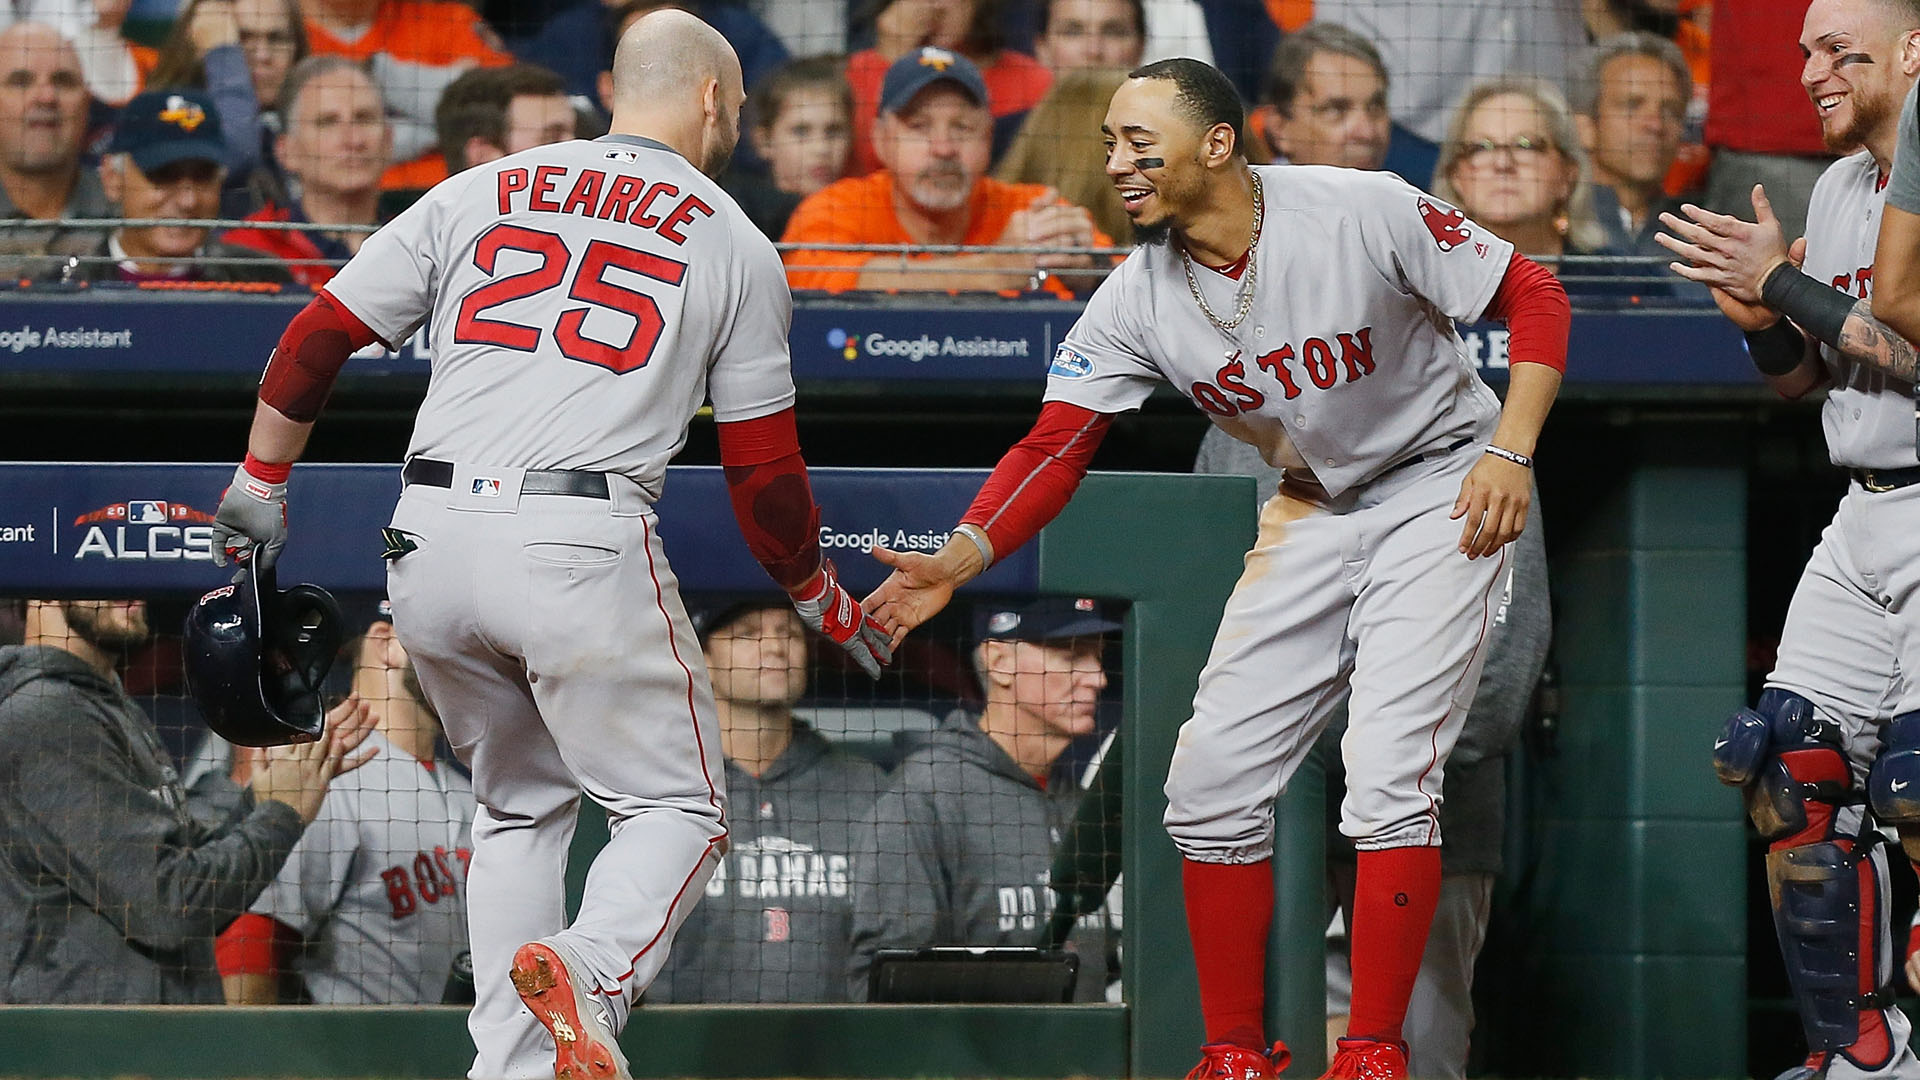 Red Sox aren't only team with cheating allegations against Astros